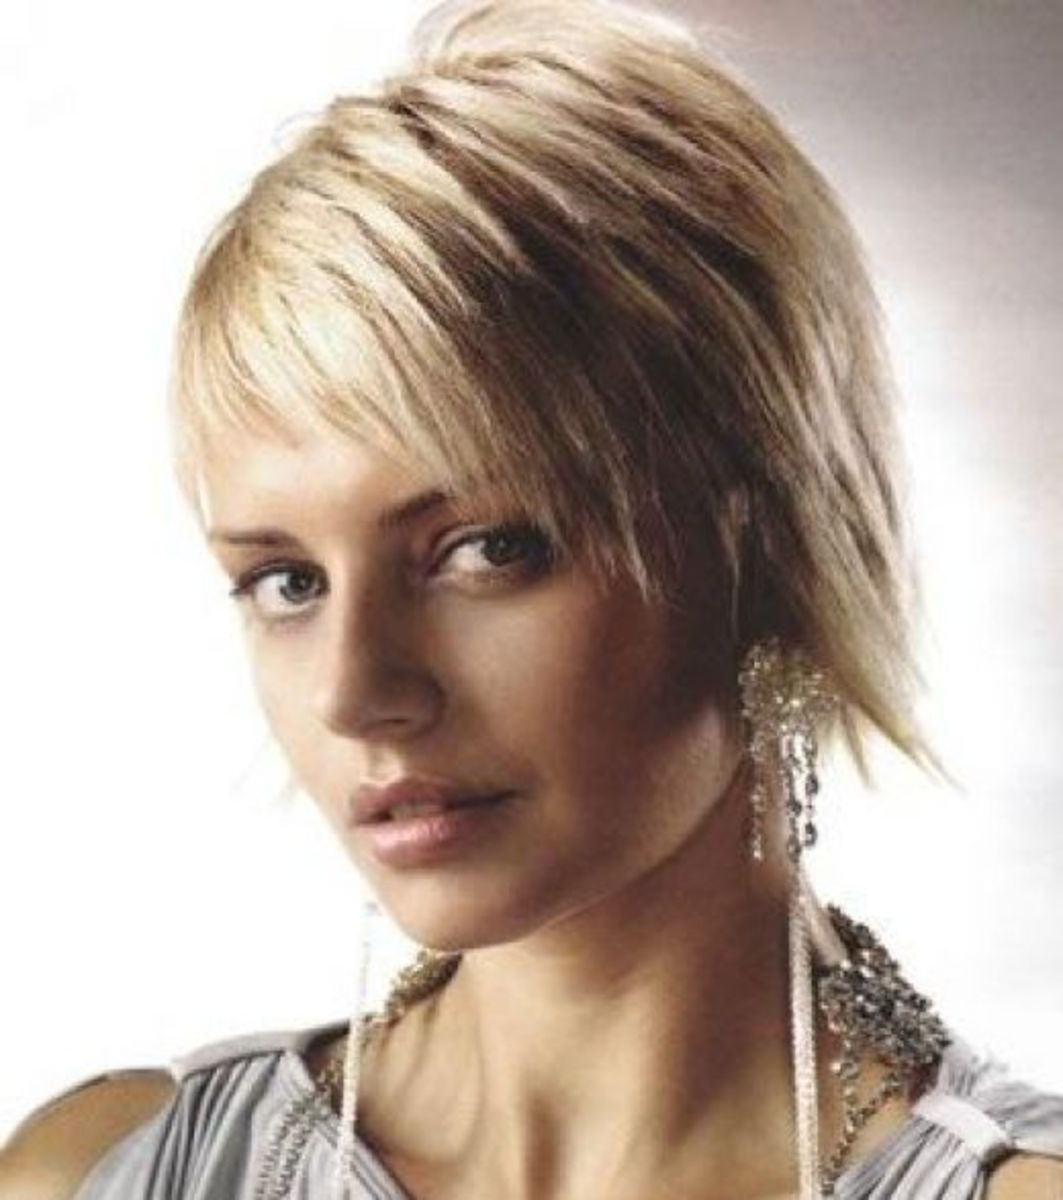 Trendy and Unique Short Hairstyles for Women